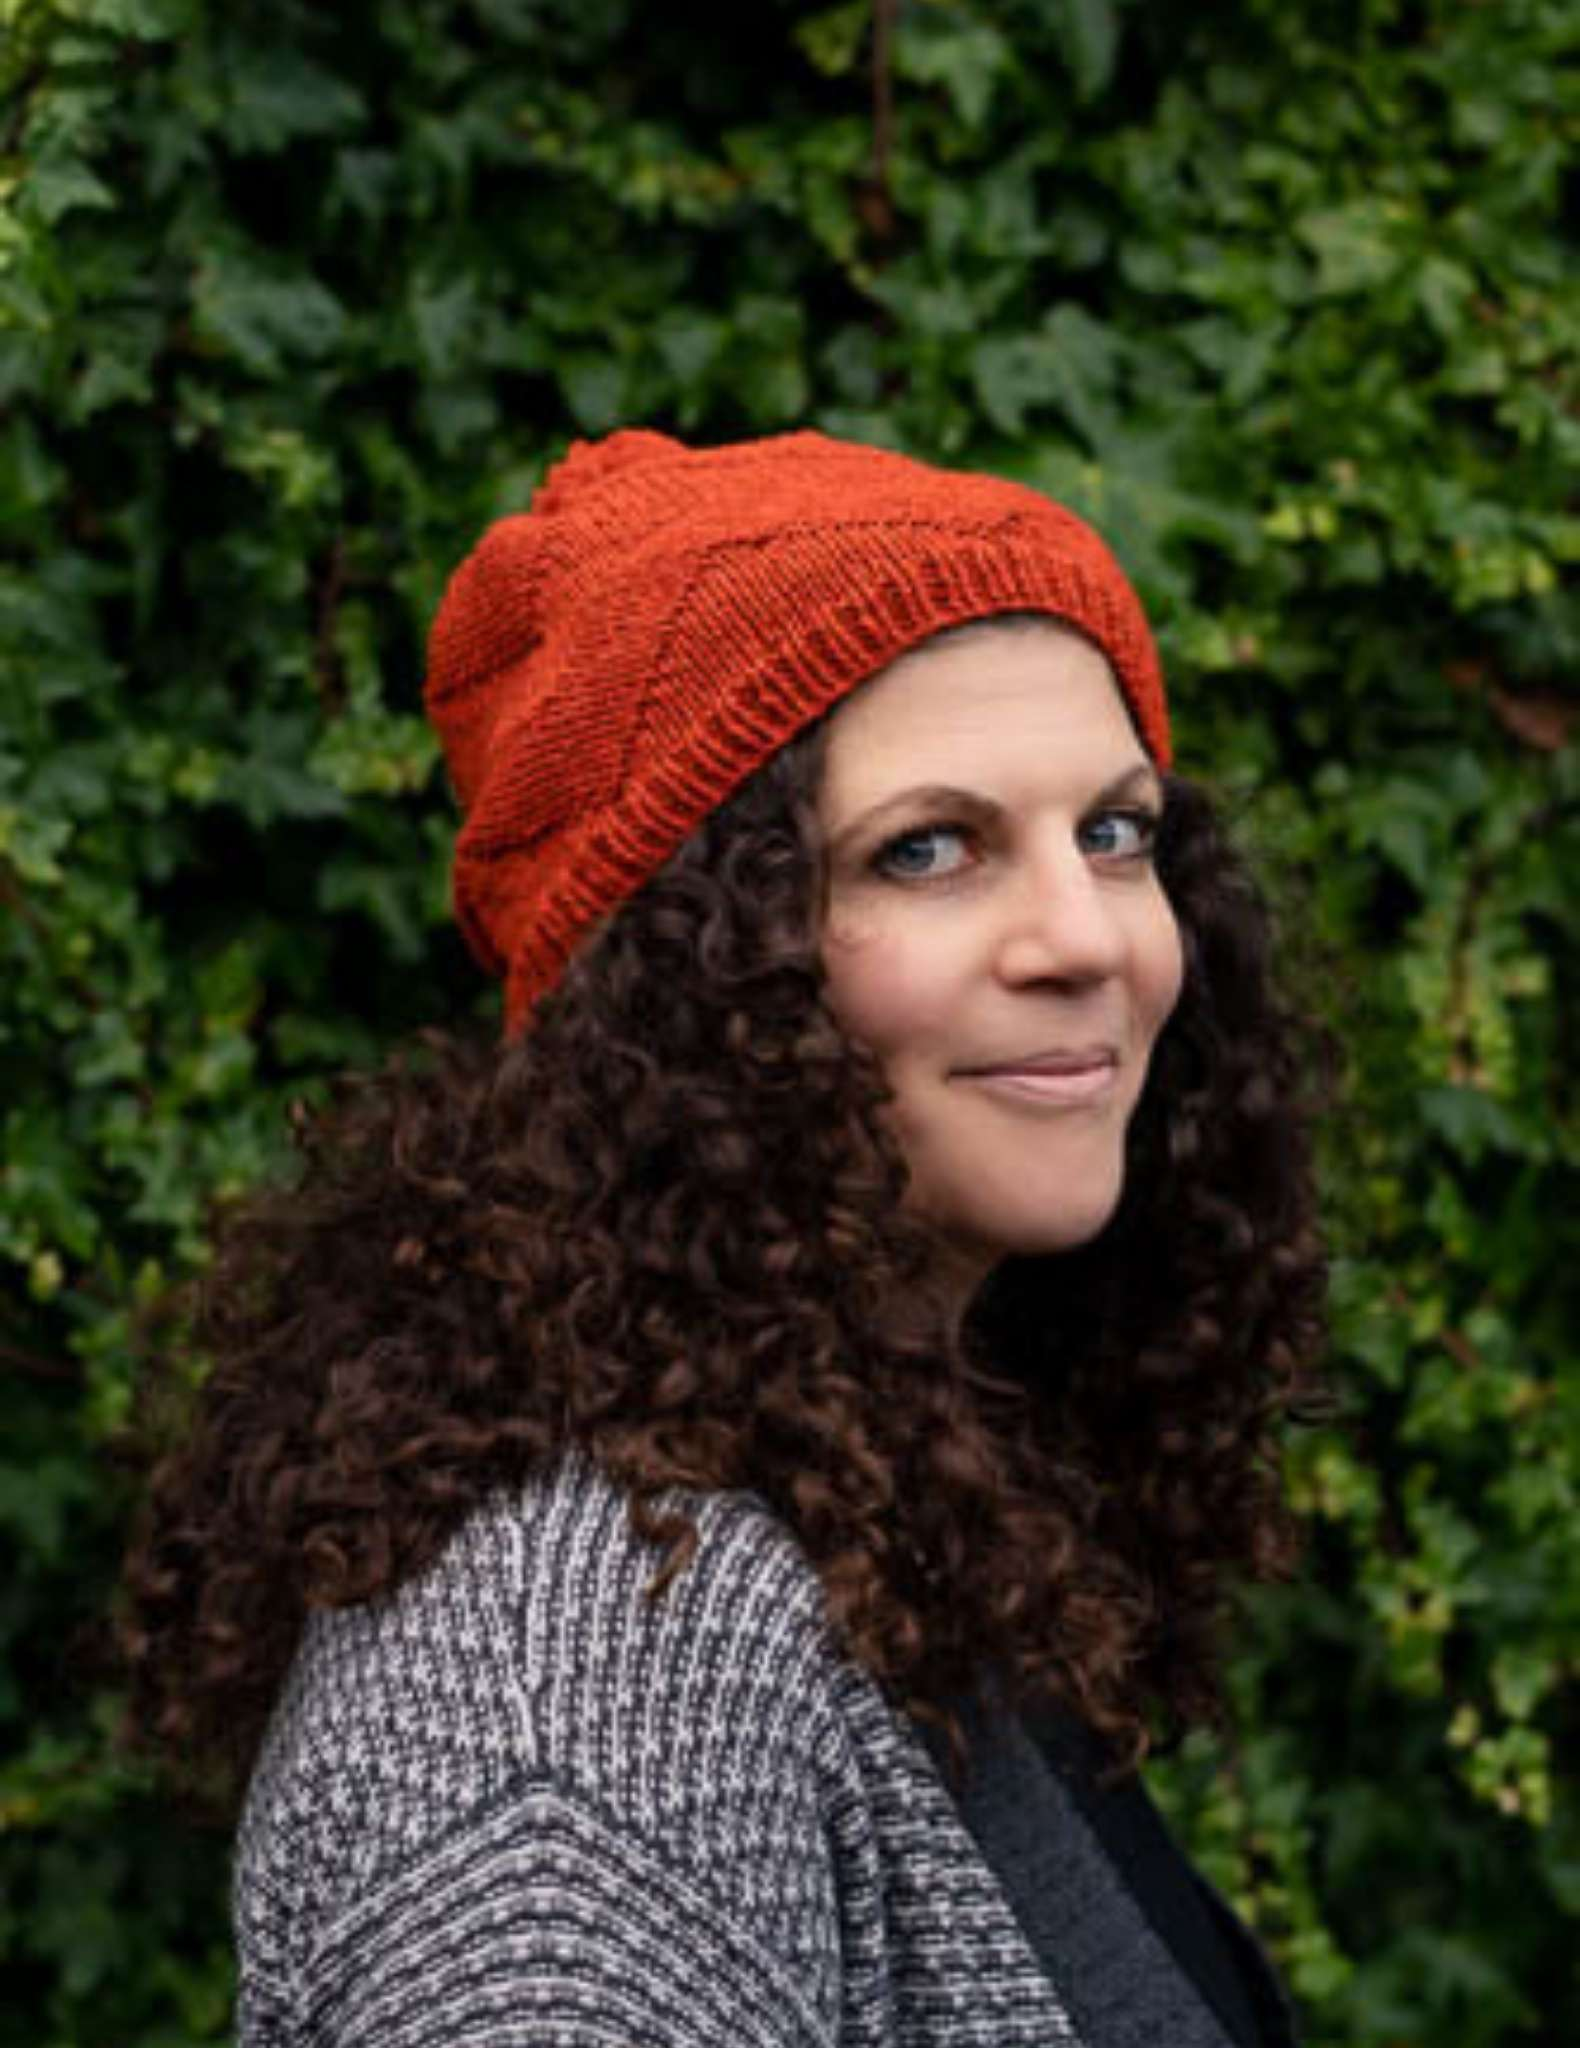 Tombreck Hat, a free pattern